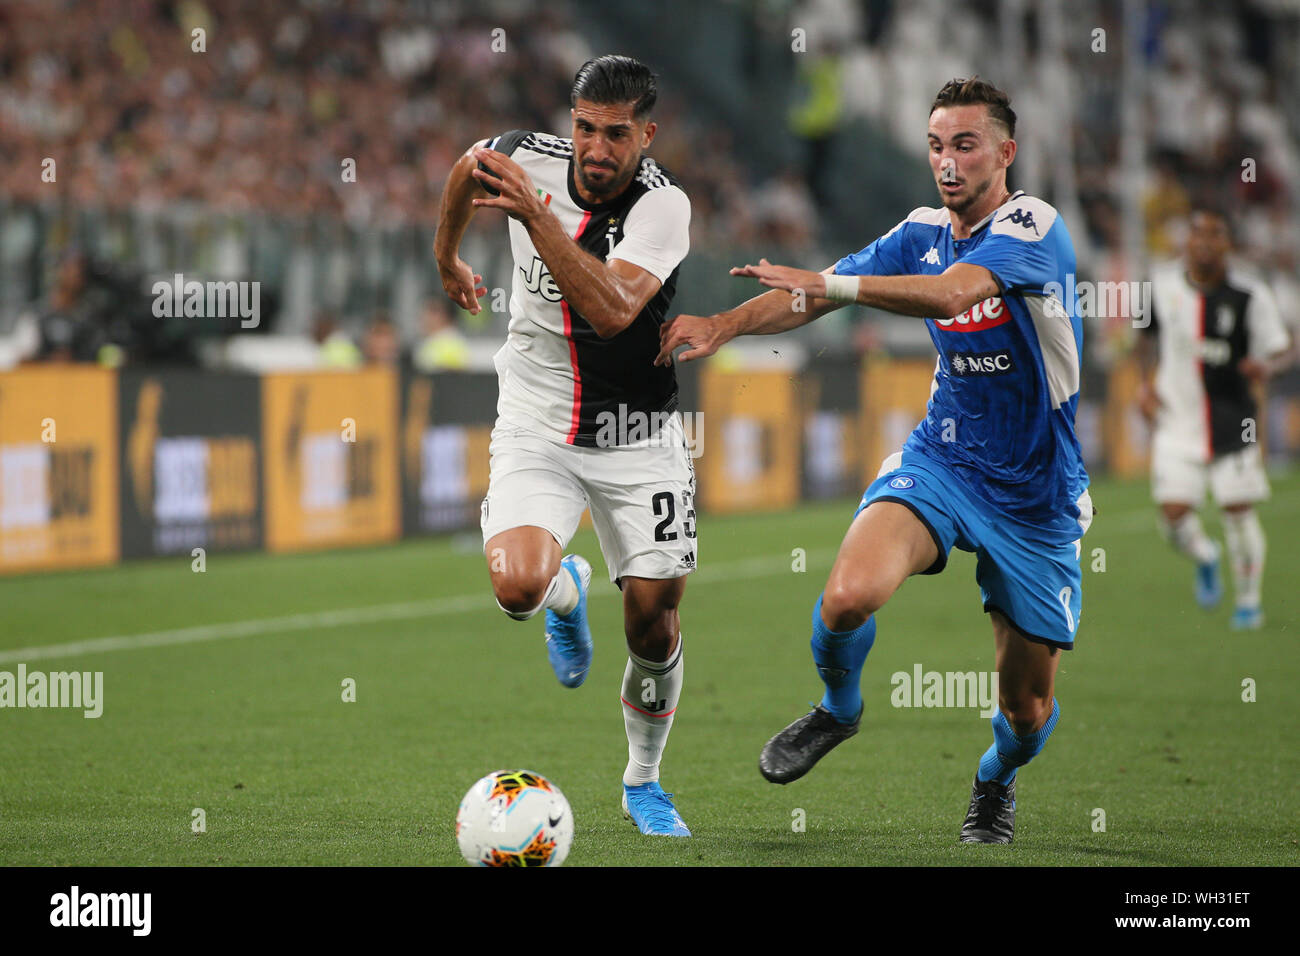 Juventus Vs Napoli High Resolution Stock Photography and Images - Alamy